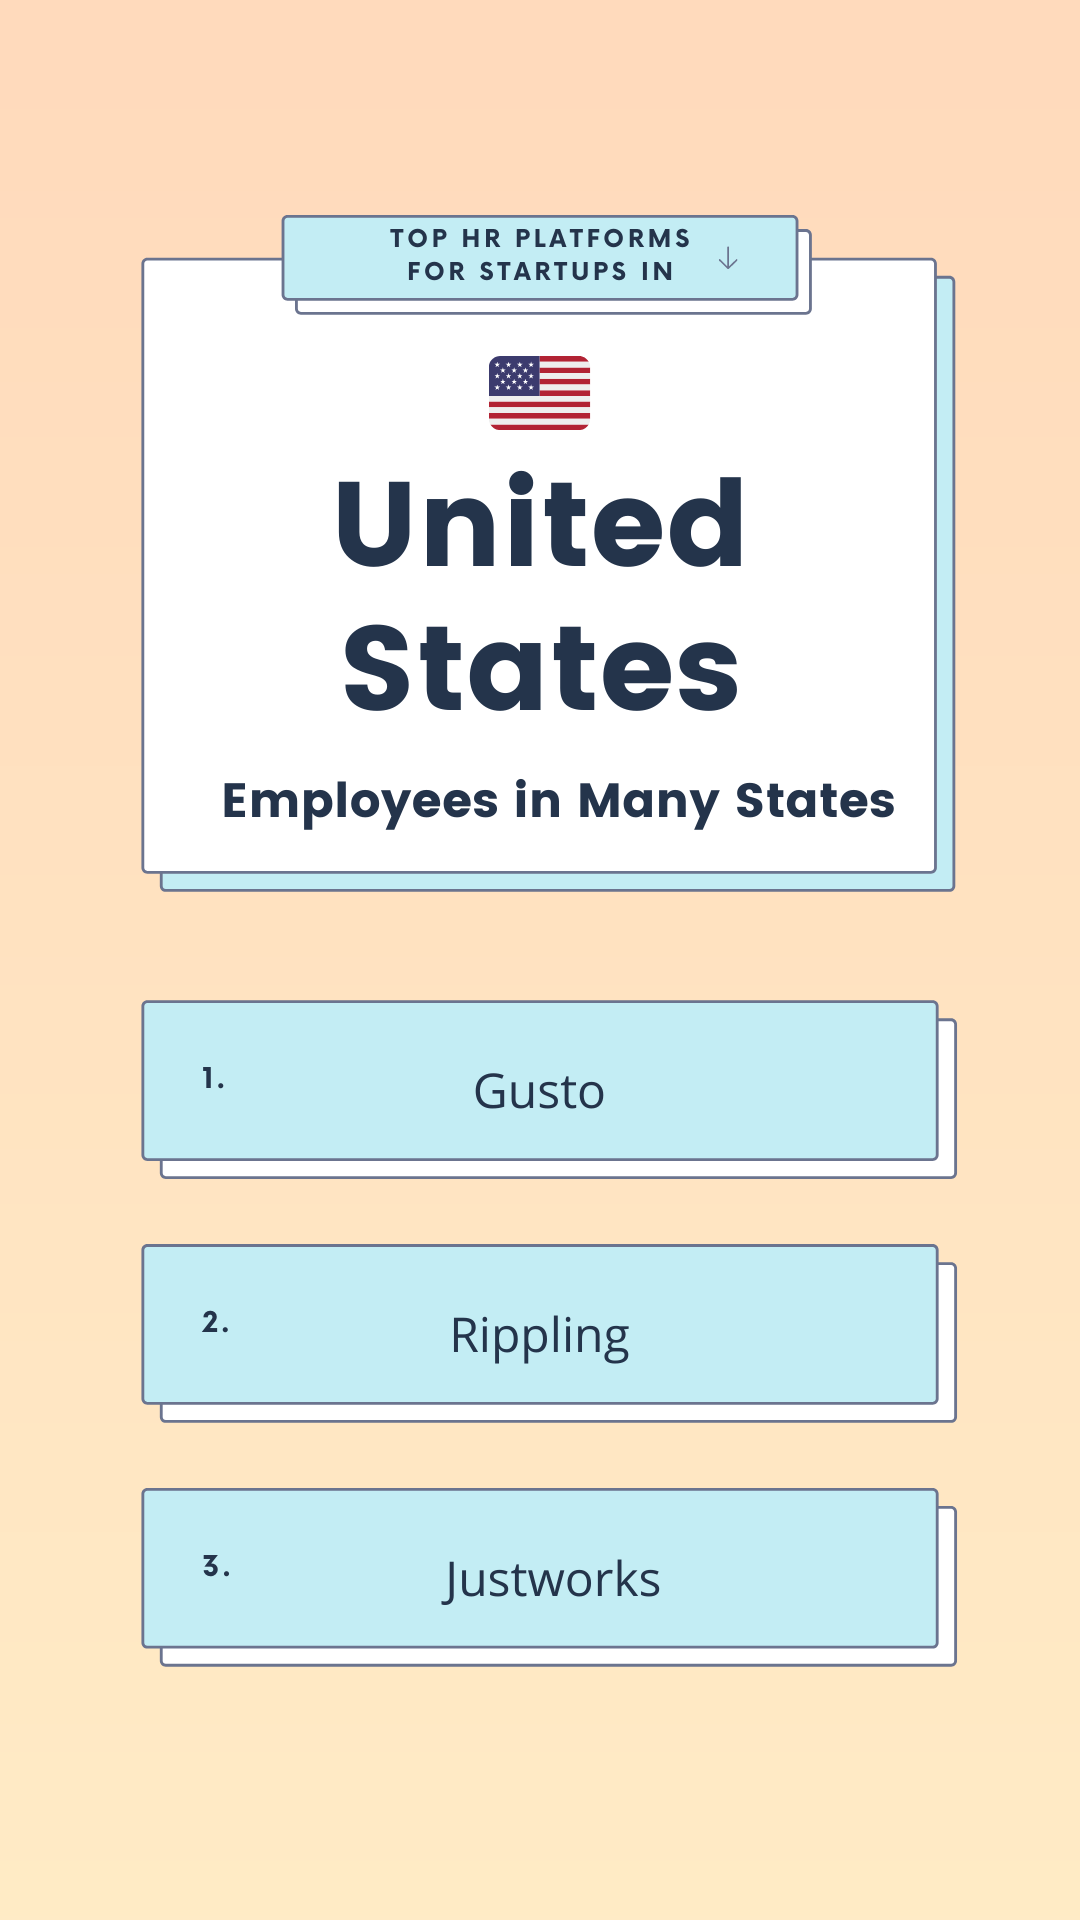 Top HR platforms for teams across multiple states in the United States